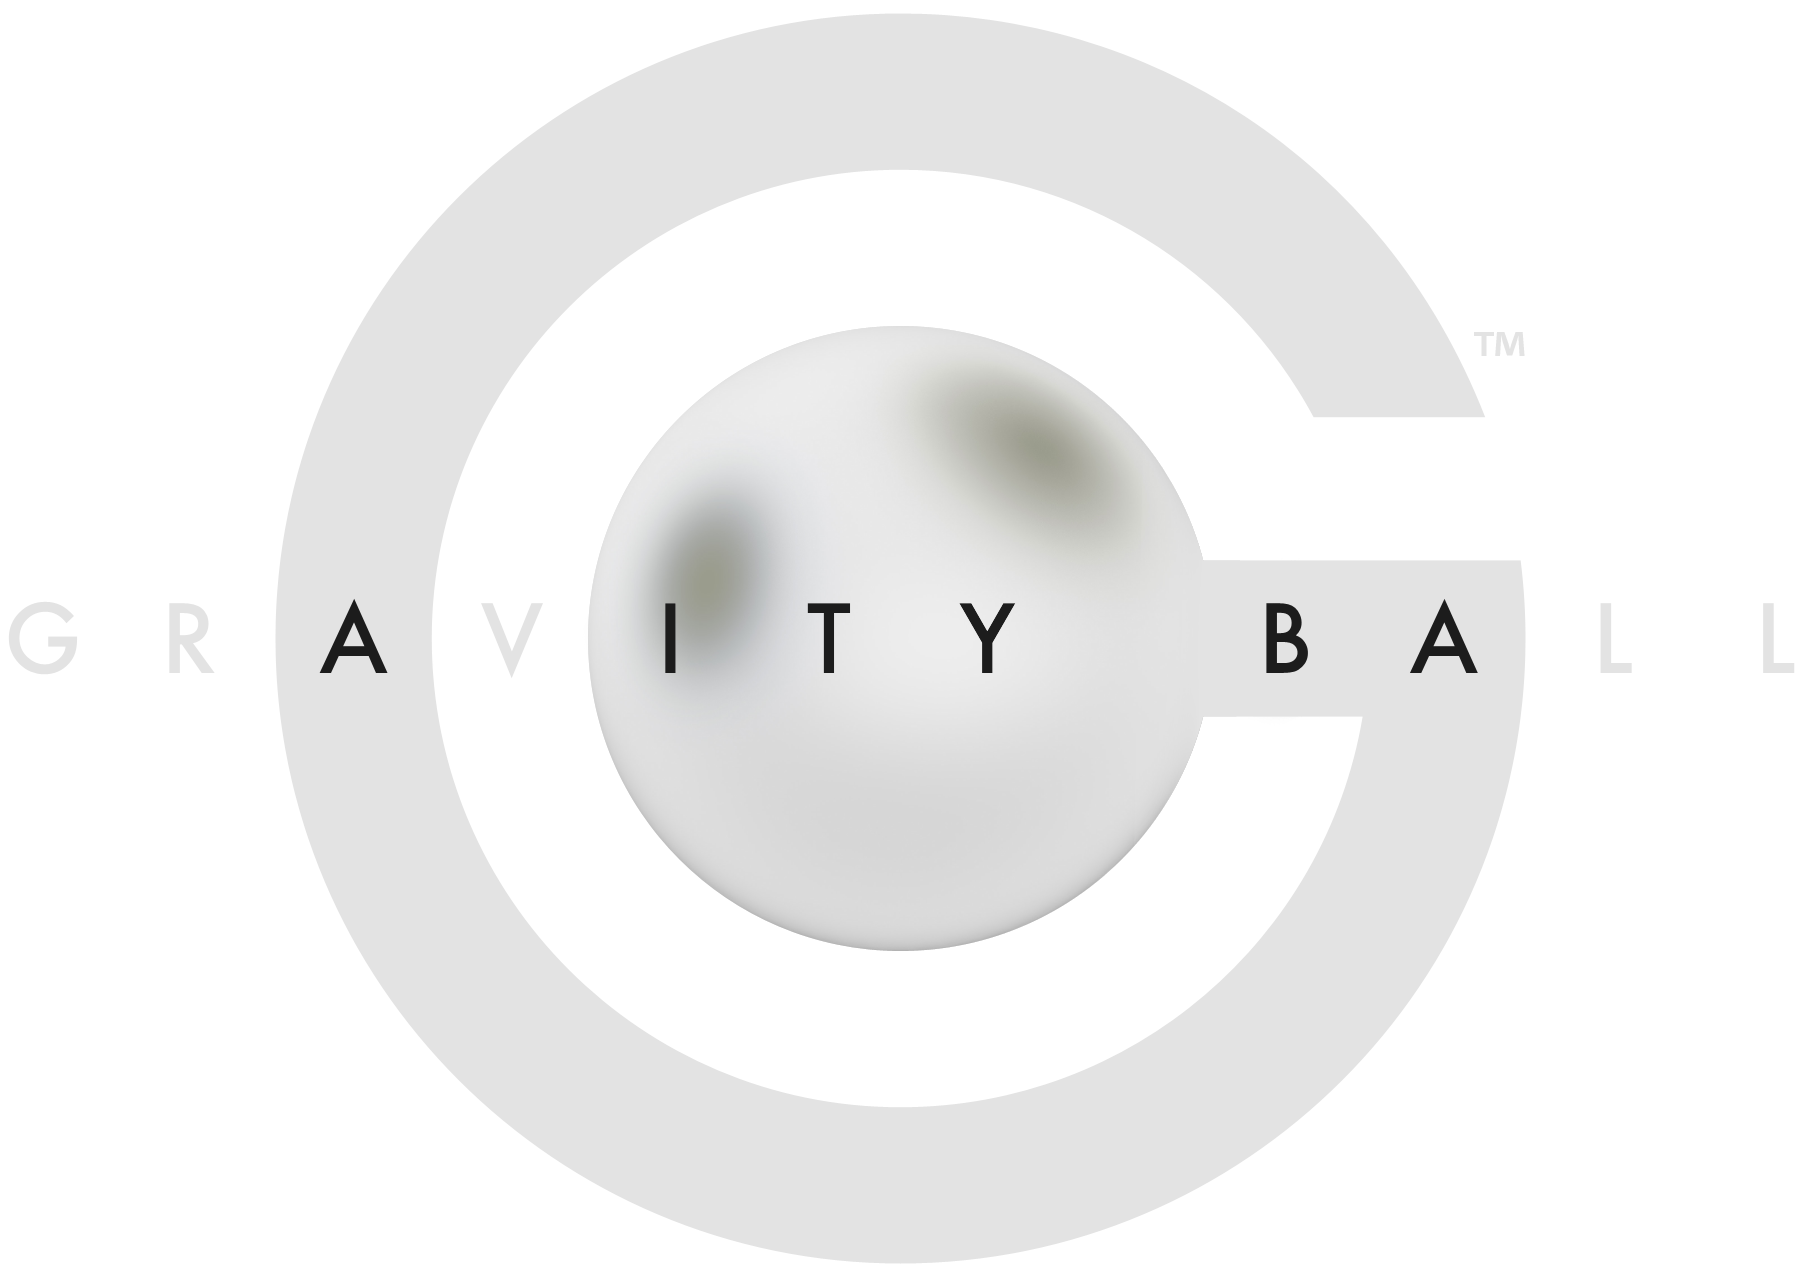 gravity-ball-logo-white.png